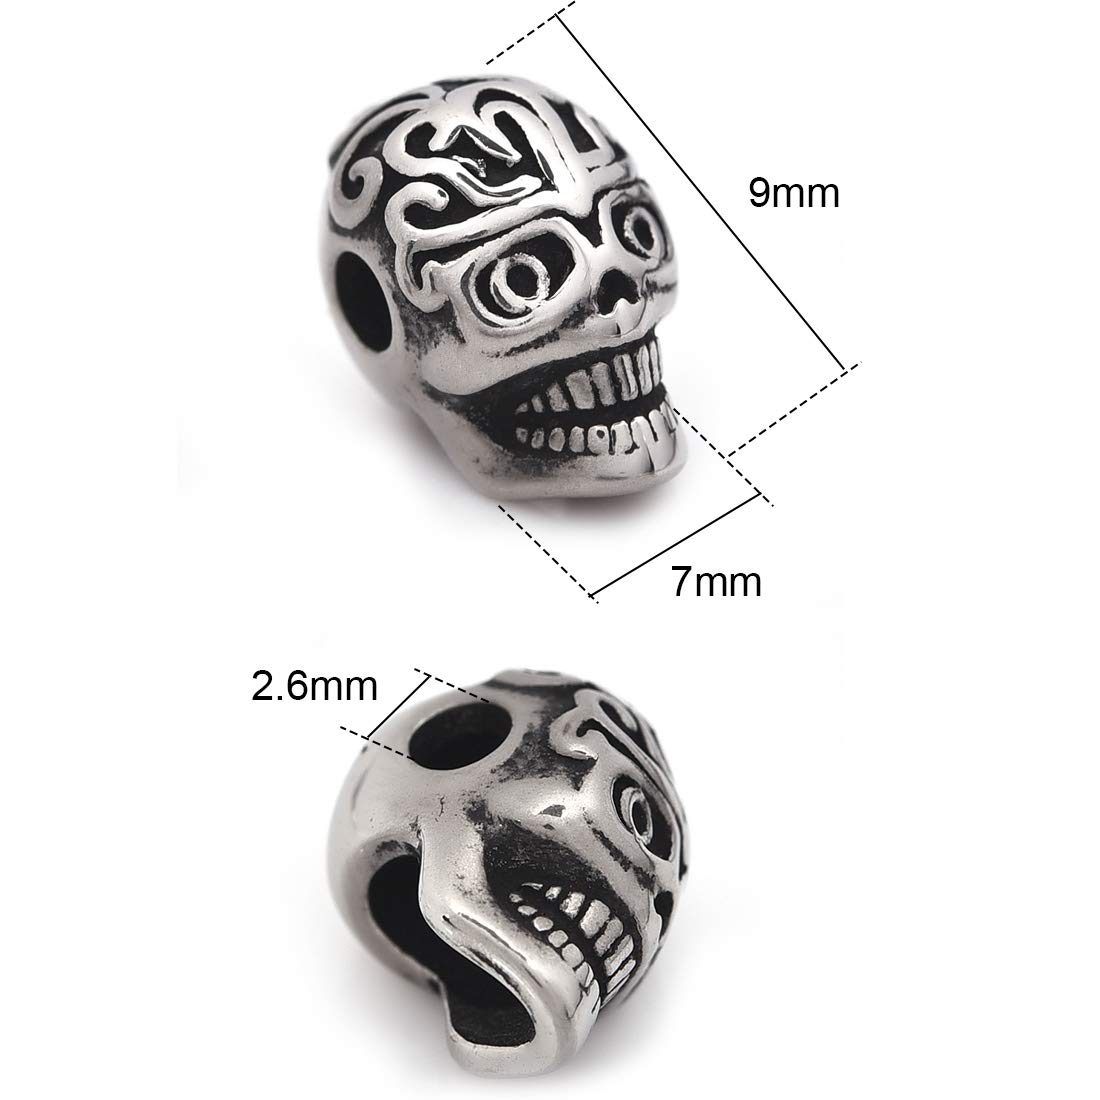 Tibetan Skull Beads 6 x 9mm Antique Silver 30 Pcs Art Hobby DIY Jewellery Making